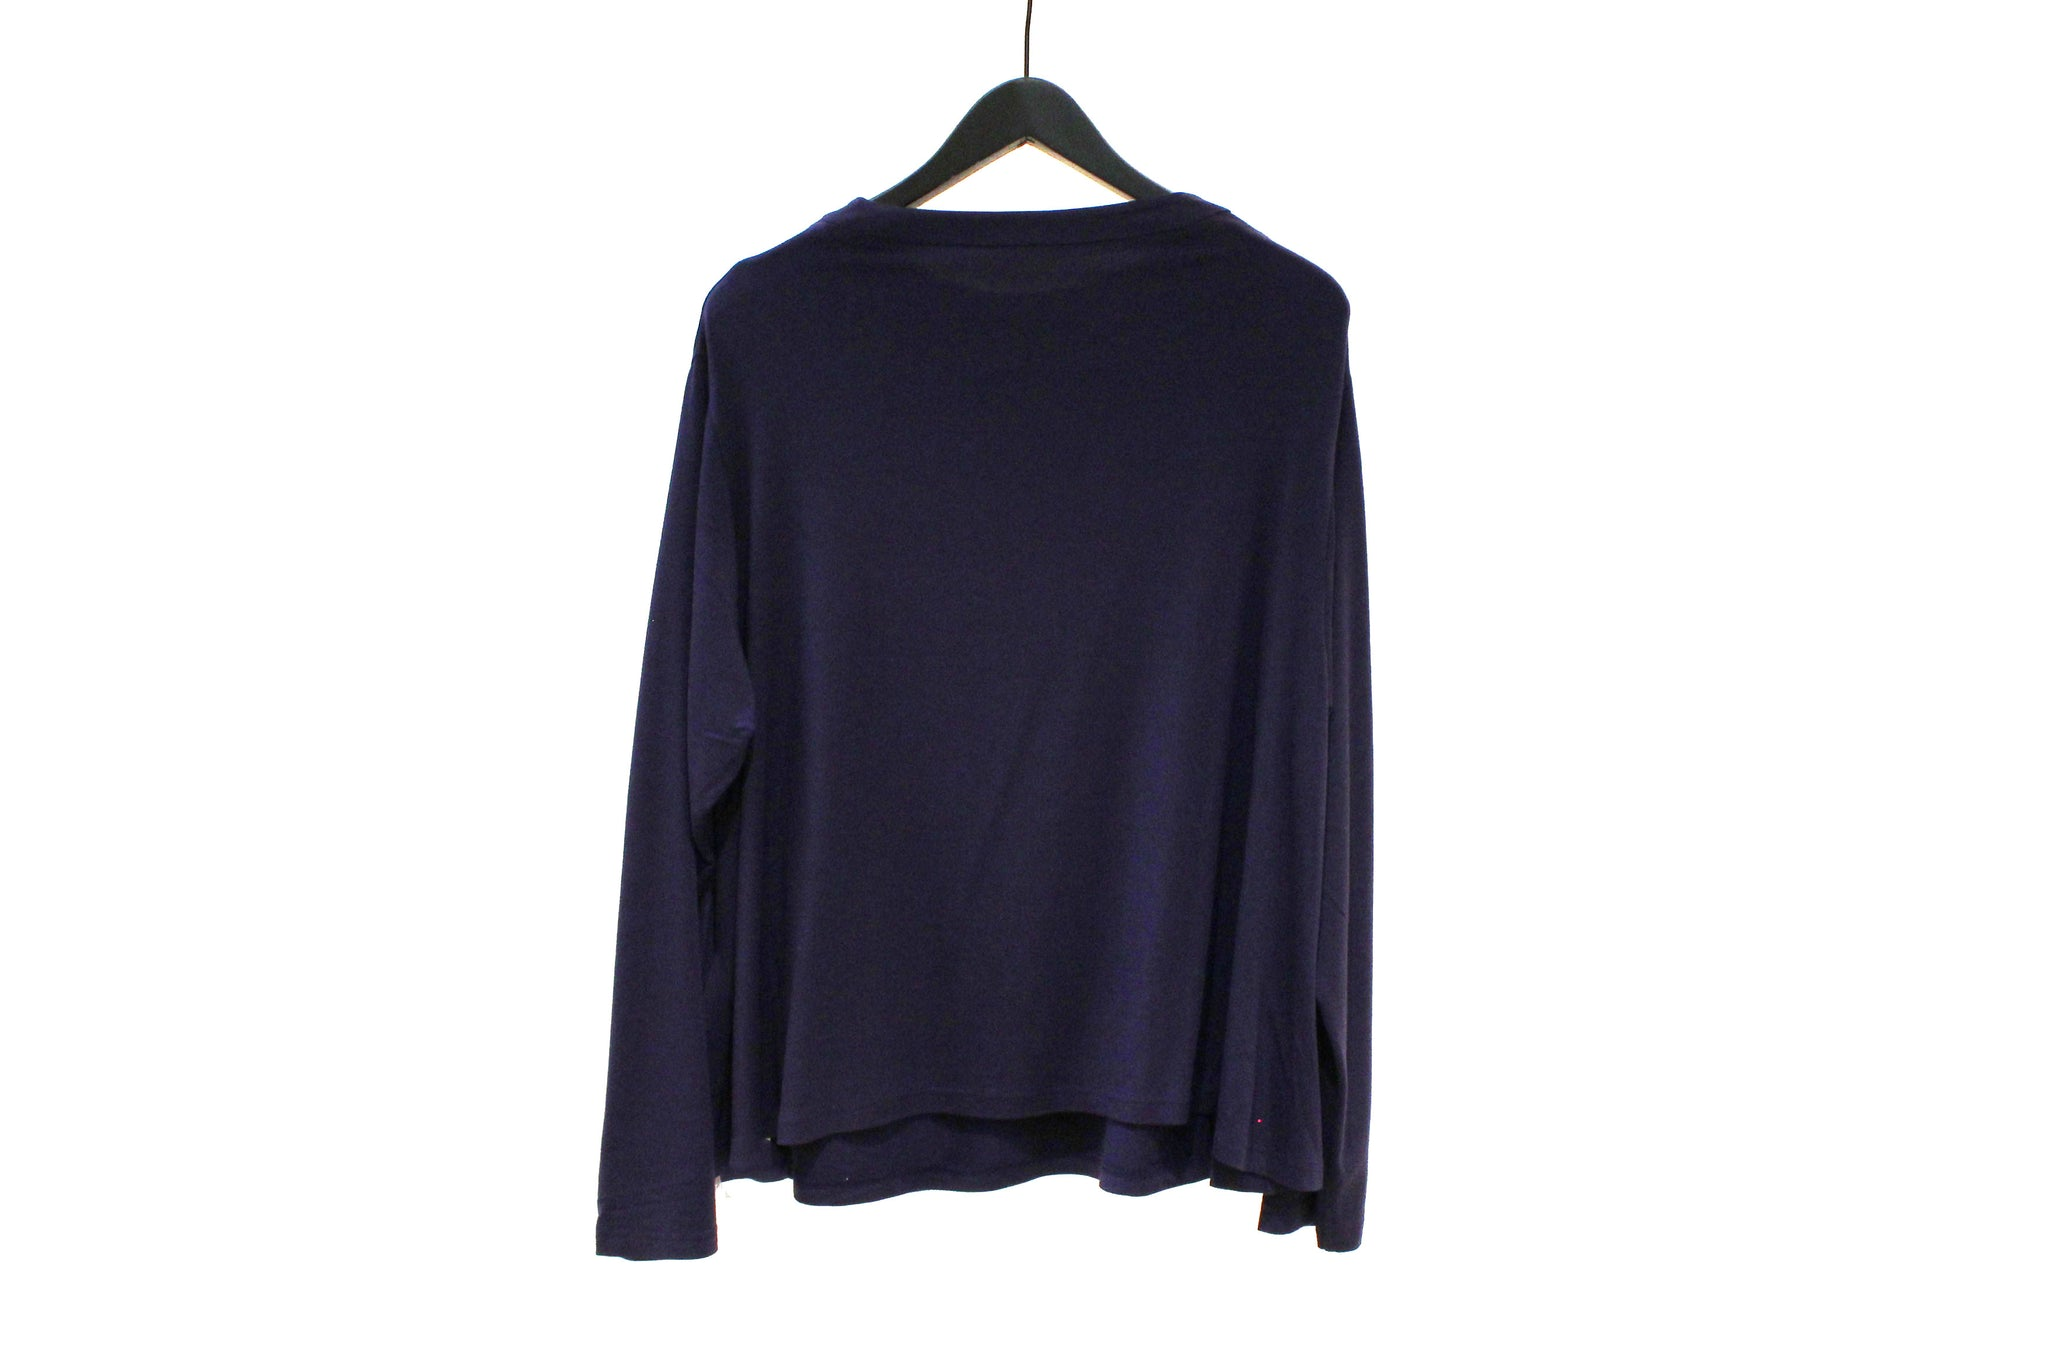 JI-U Purple Multicolour Appliqué Long Sleeve T-shirt